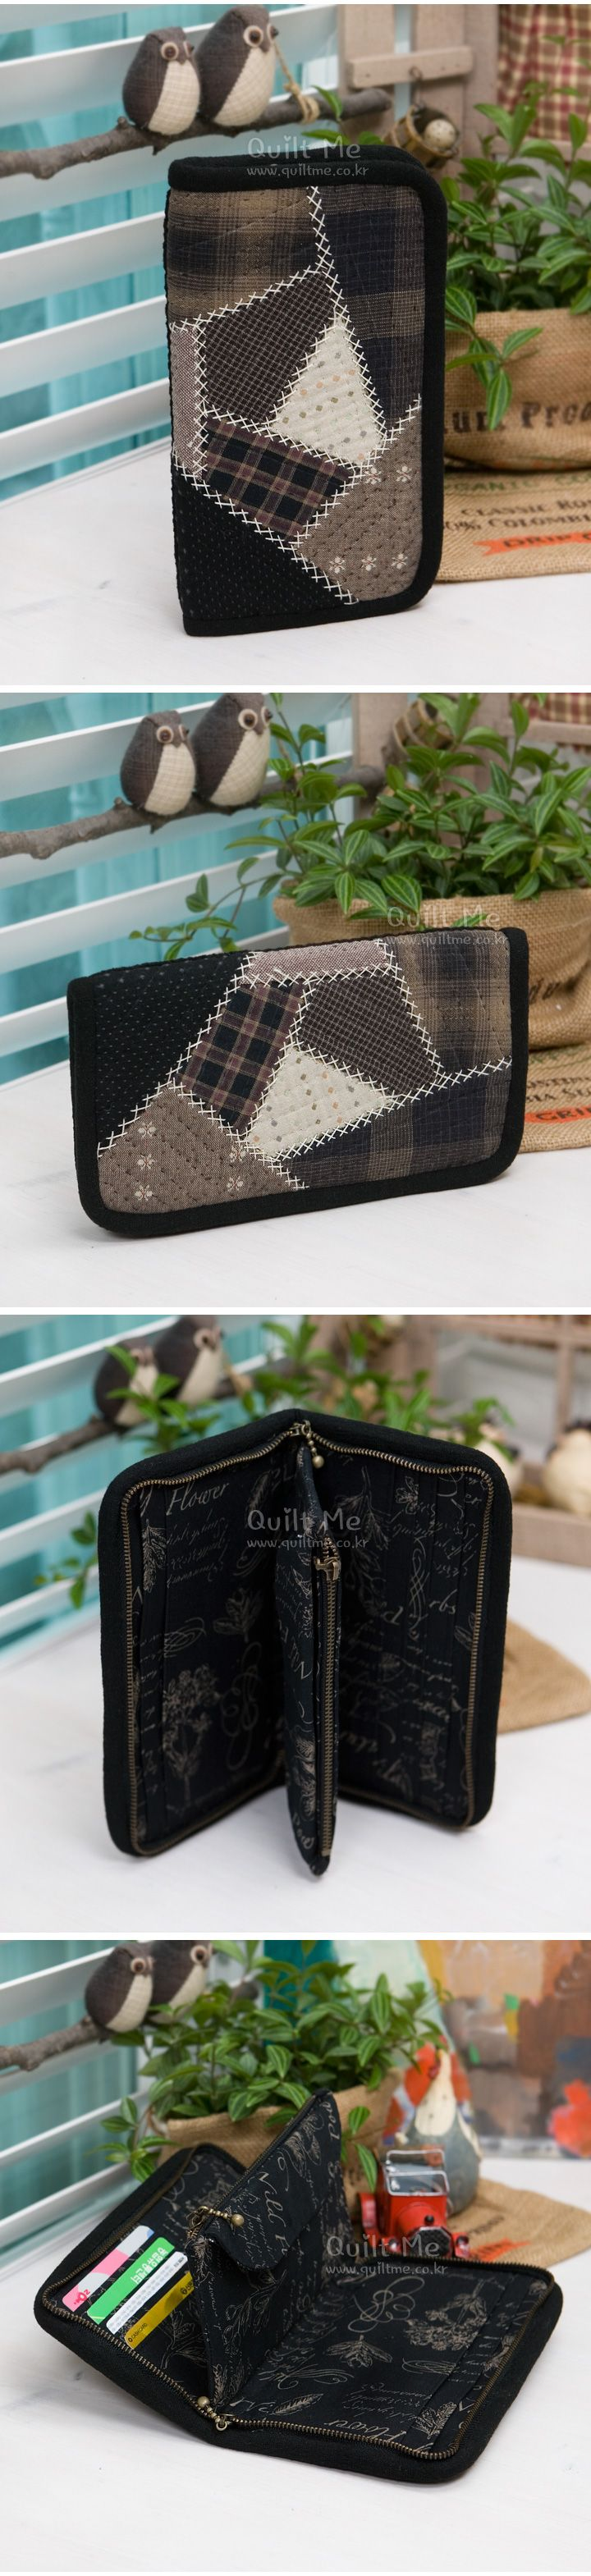 glasses case or perhaps needle keeper case Japanese quilter 퀼트미 [NEW 블랙 크레이지 장지갑]